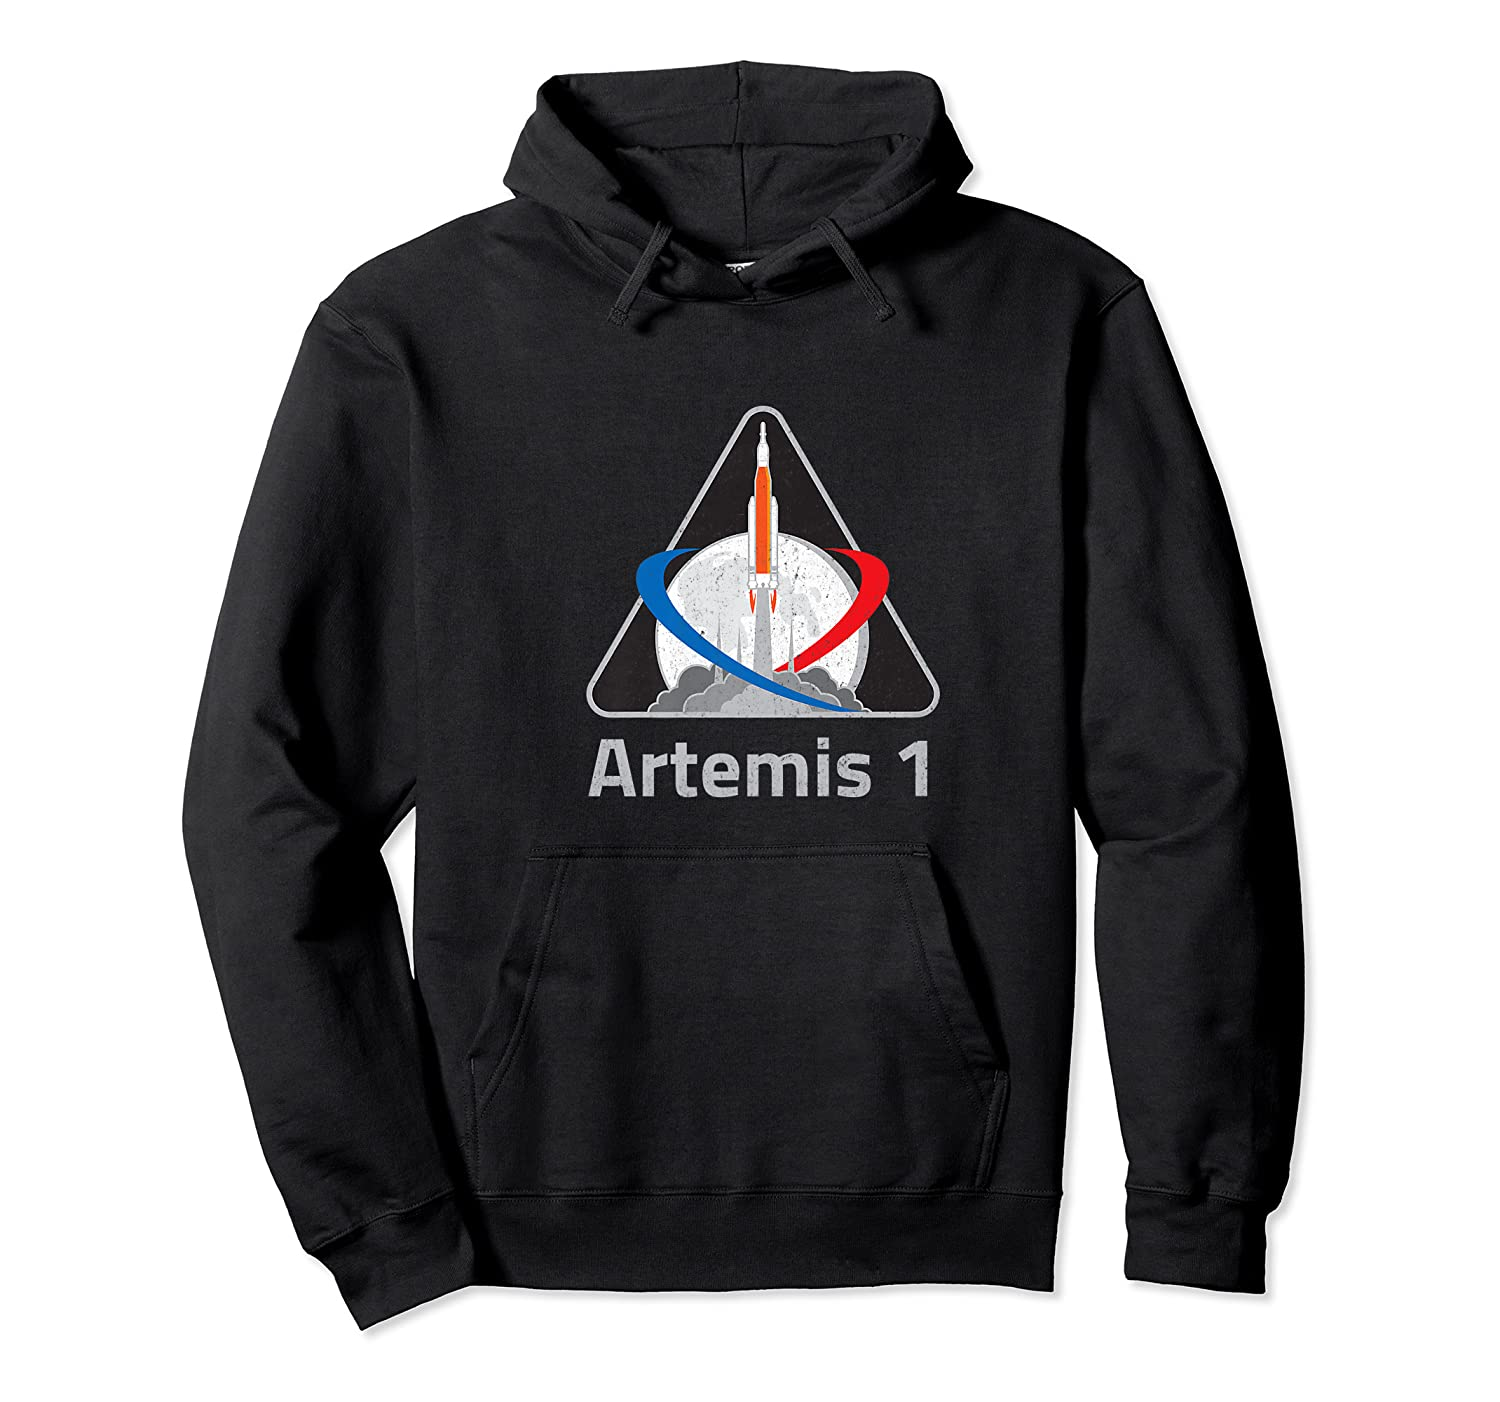 Artemis 1 Patch We Are Going Moon To Mars 2024 Vintage Shirts Unisex Pullover Hoodie